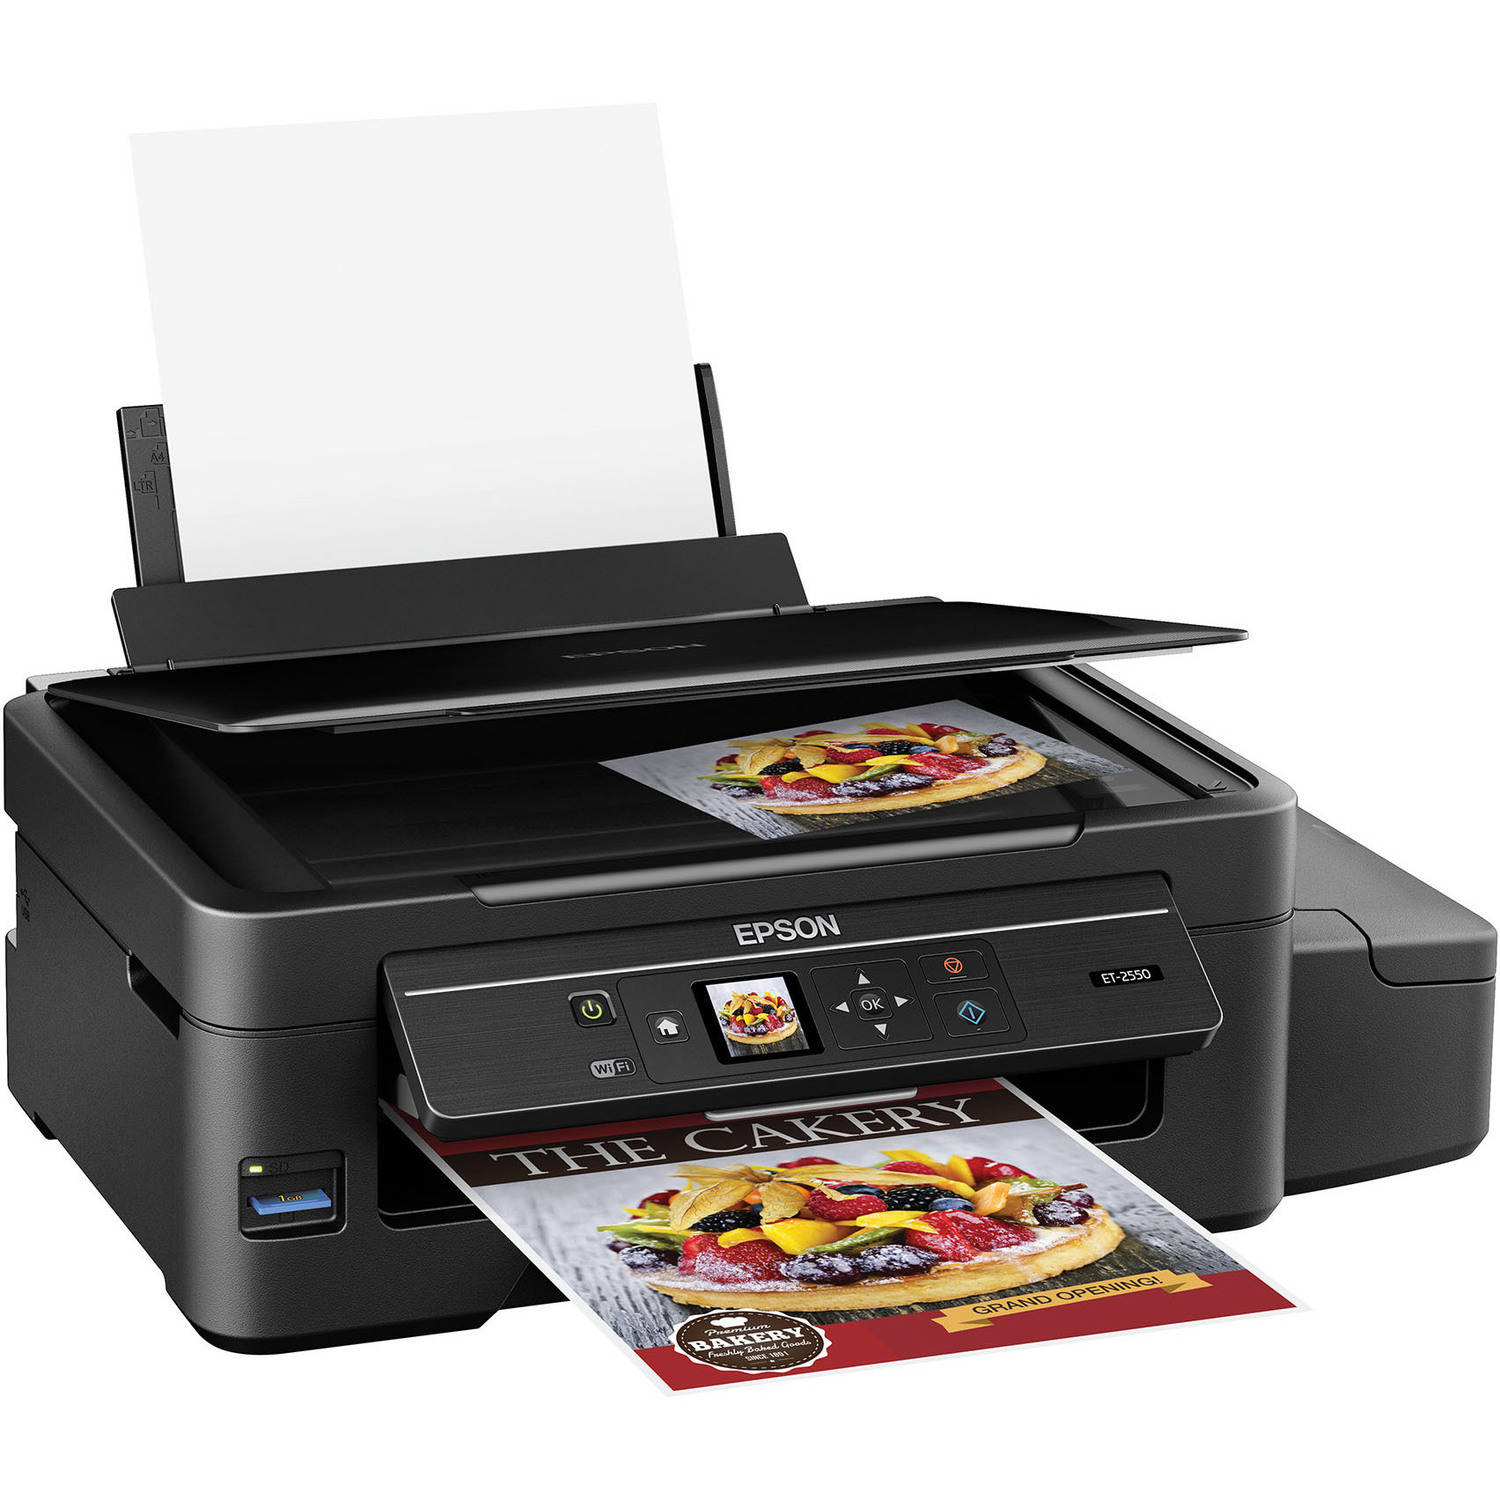 Epson Expression ET-2550 EcoTank All-in-One Printer/Copier/Scanner